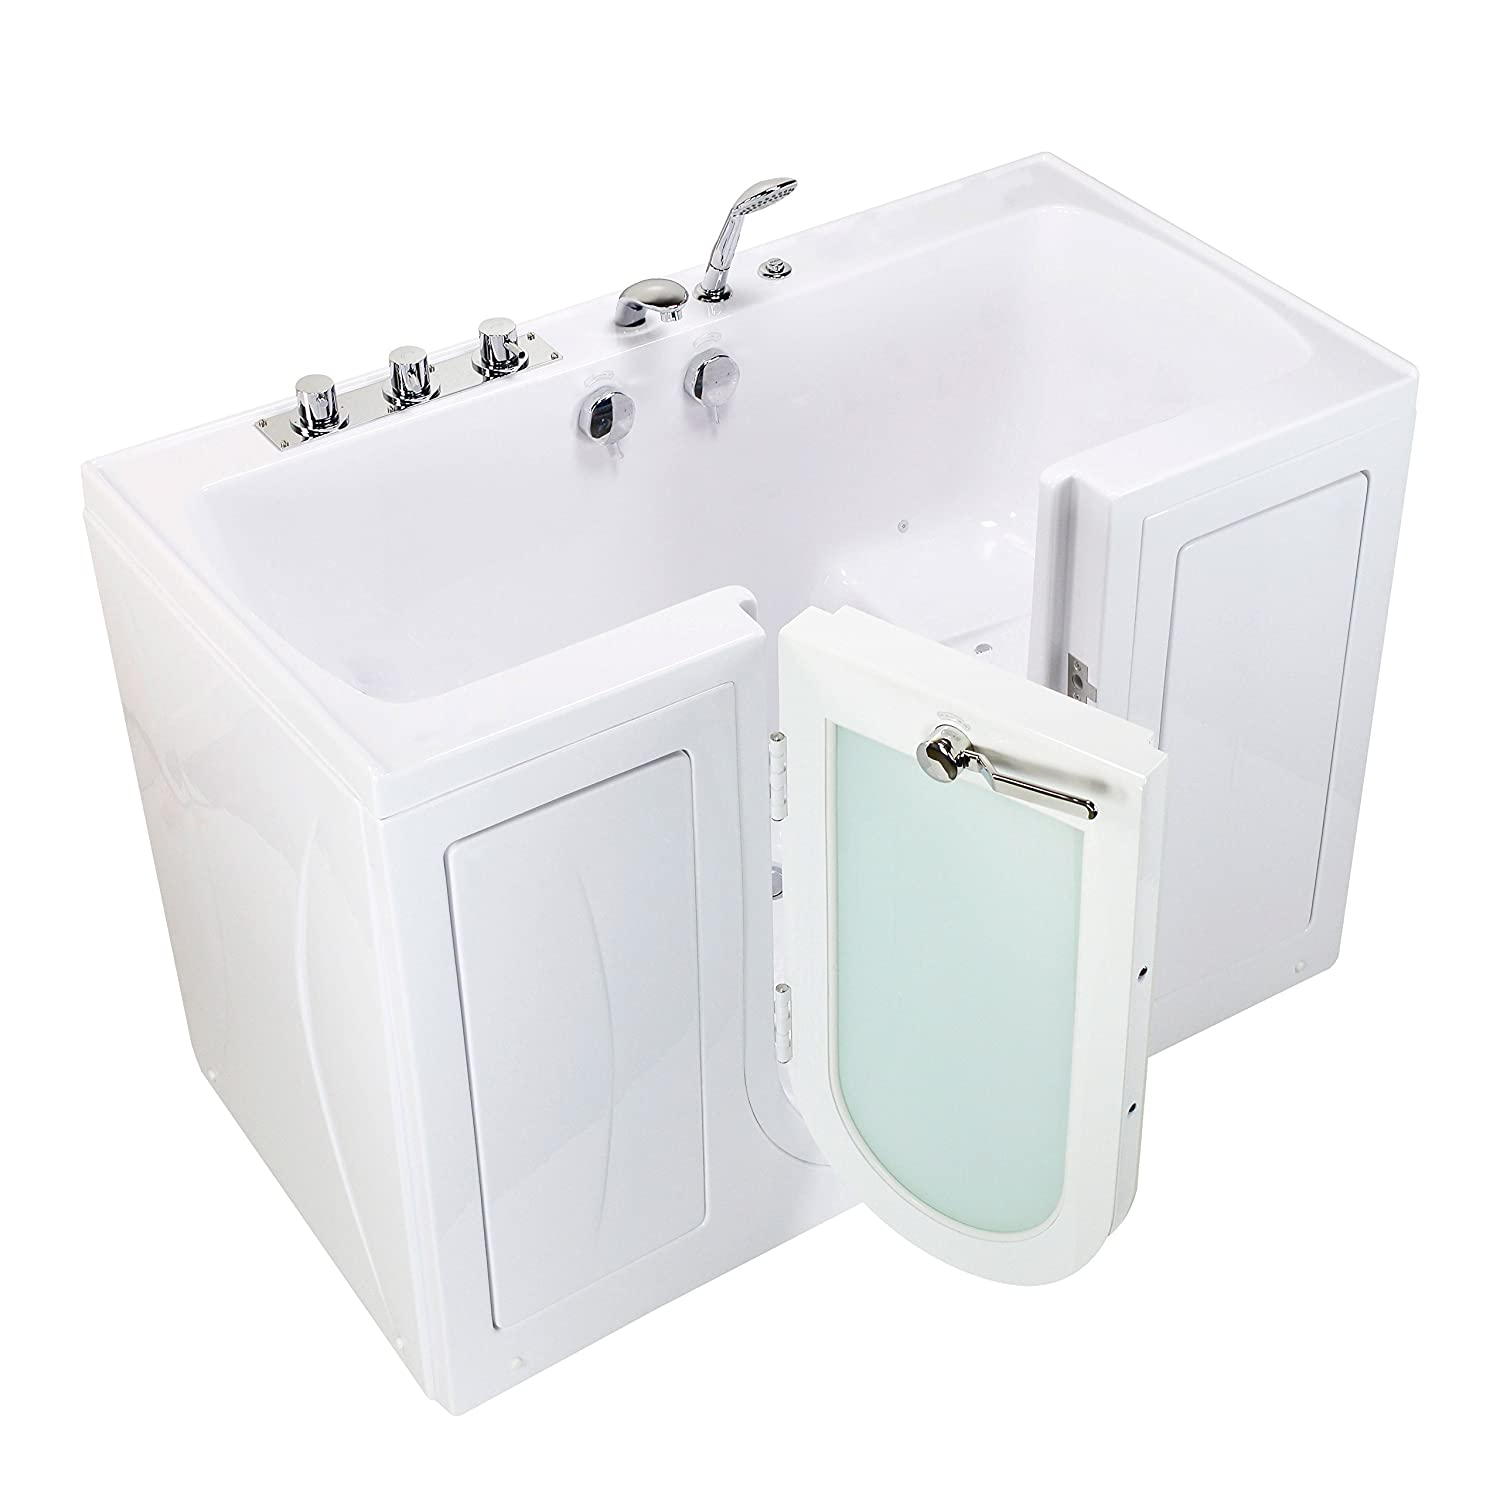 Walk In Tub With Heated Seat. Ella O2SA3260AH R Tub4Two Acrylic Air Massage Heated Seat Walk in Tub with  Right Outward Swing Door Thermostatic Faucet 2 Dual Drain 32 x 60 42